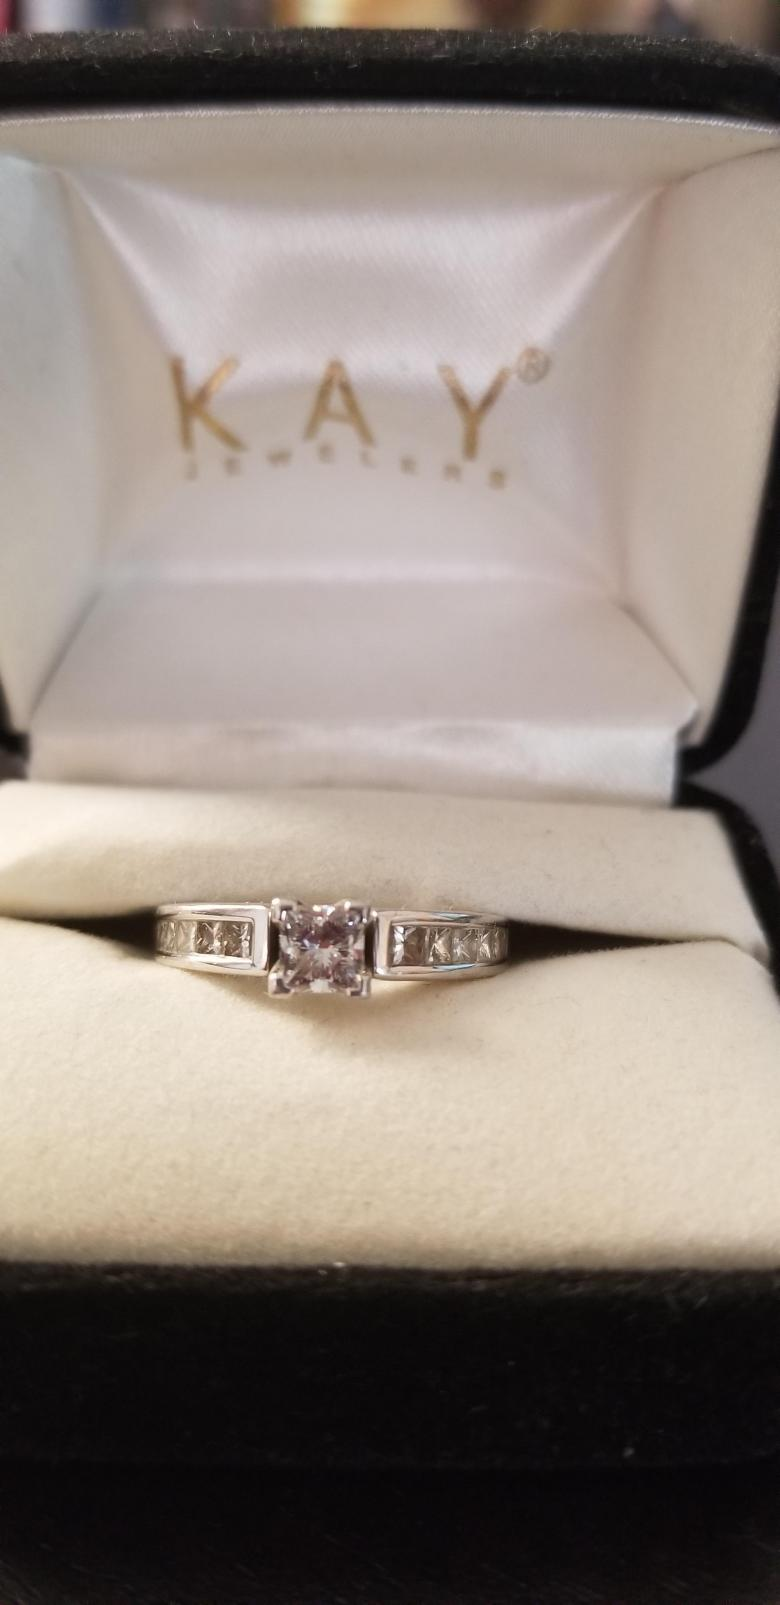 Kay Jewelers 0.5 ct